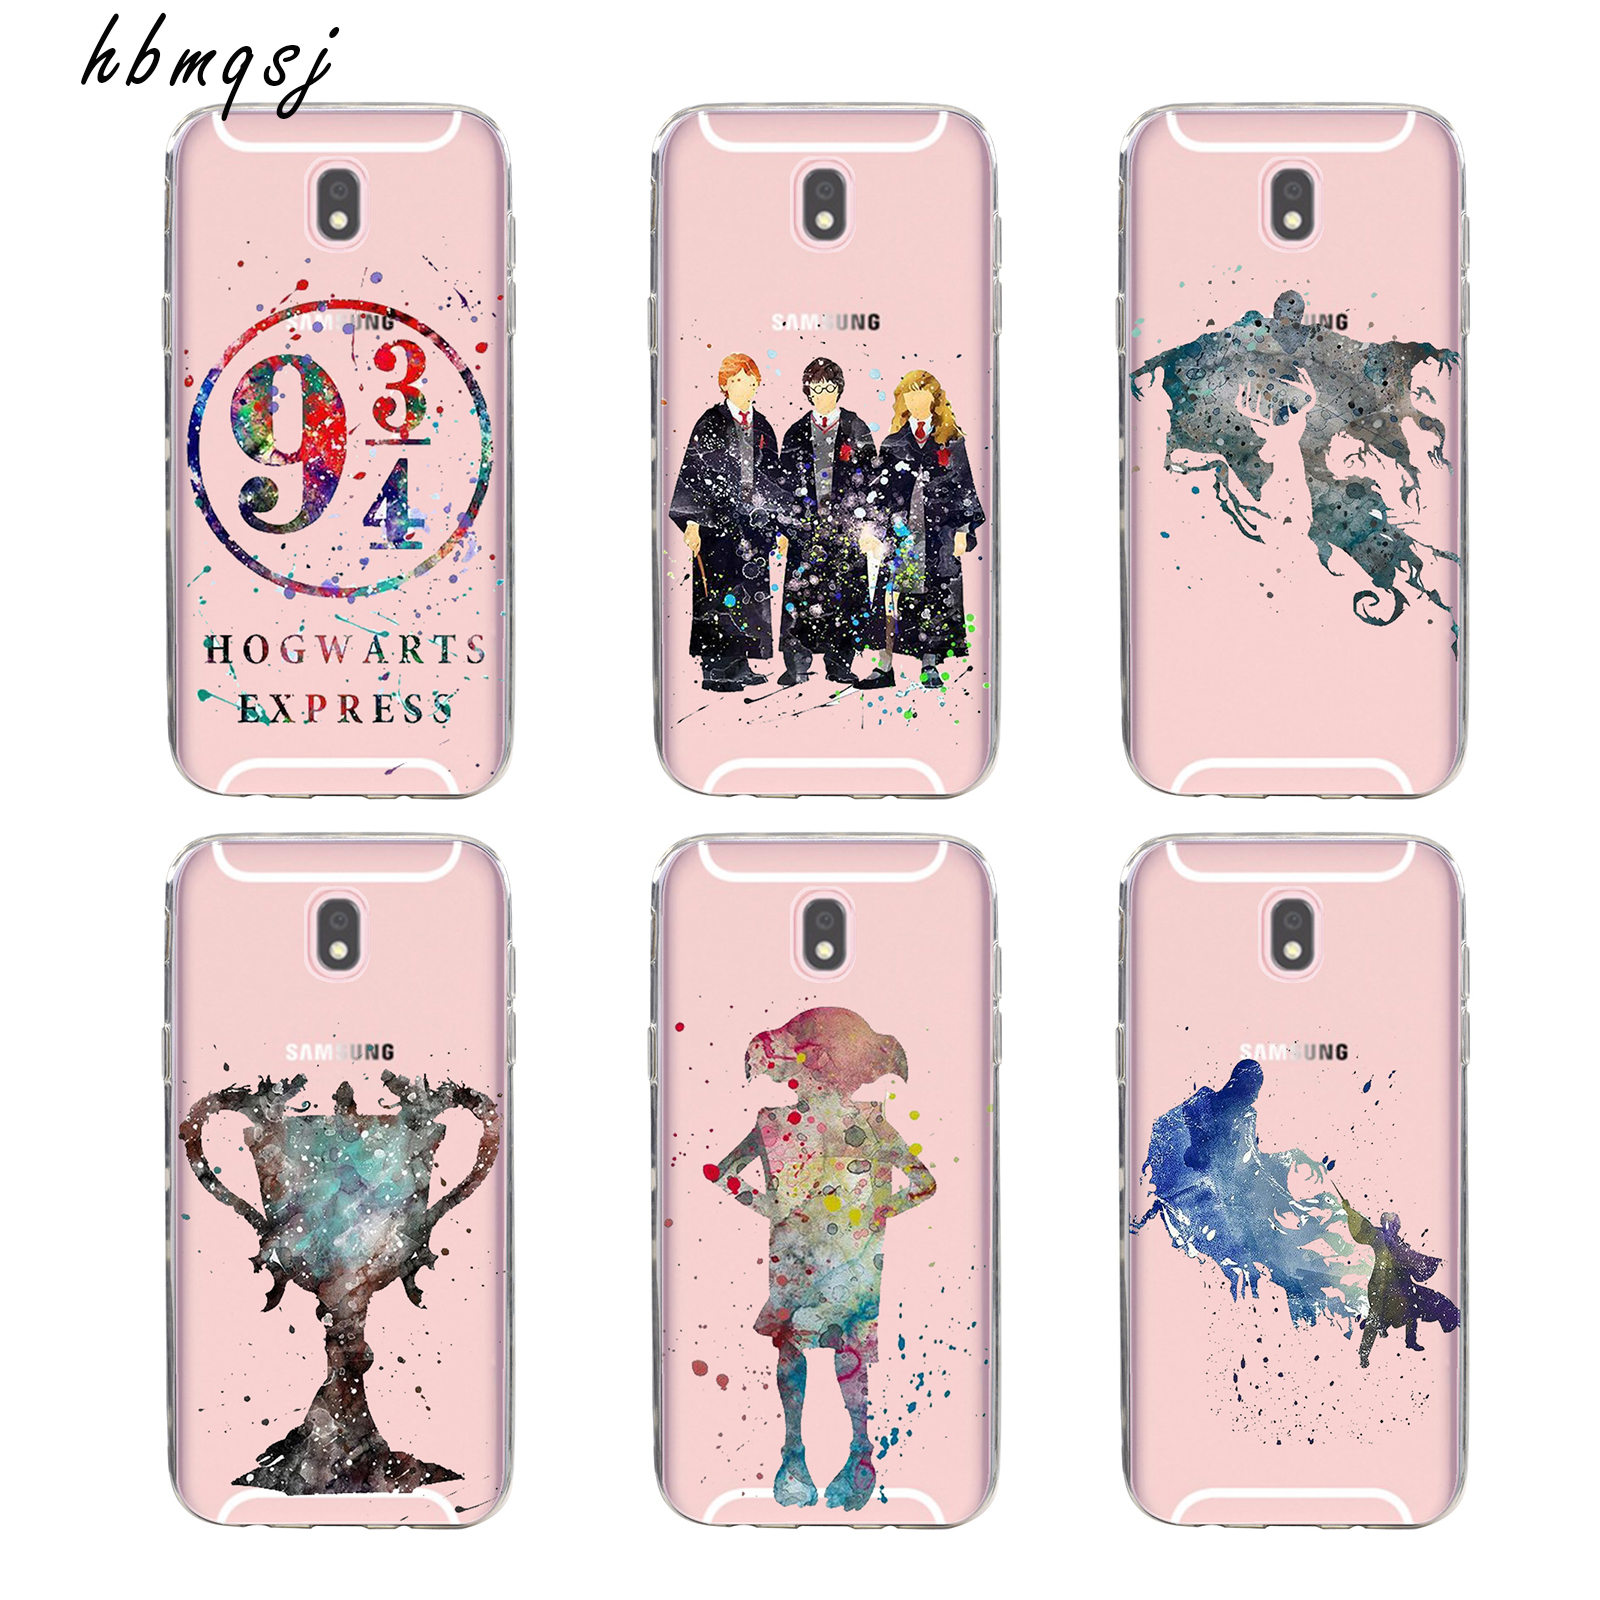 Cool for samsung galaxy j530 j5 case 2017 silicone soft tpu transparent cartoon movie art painting Harry Potter magic wand phone